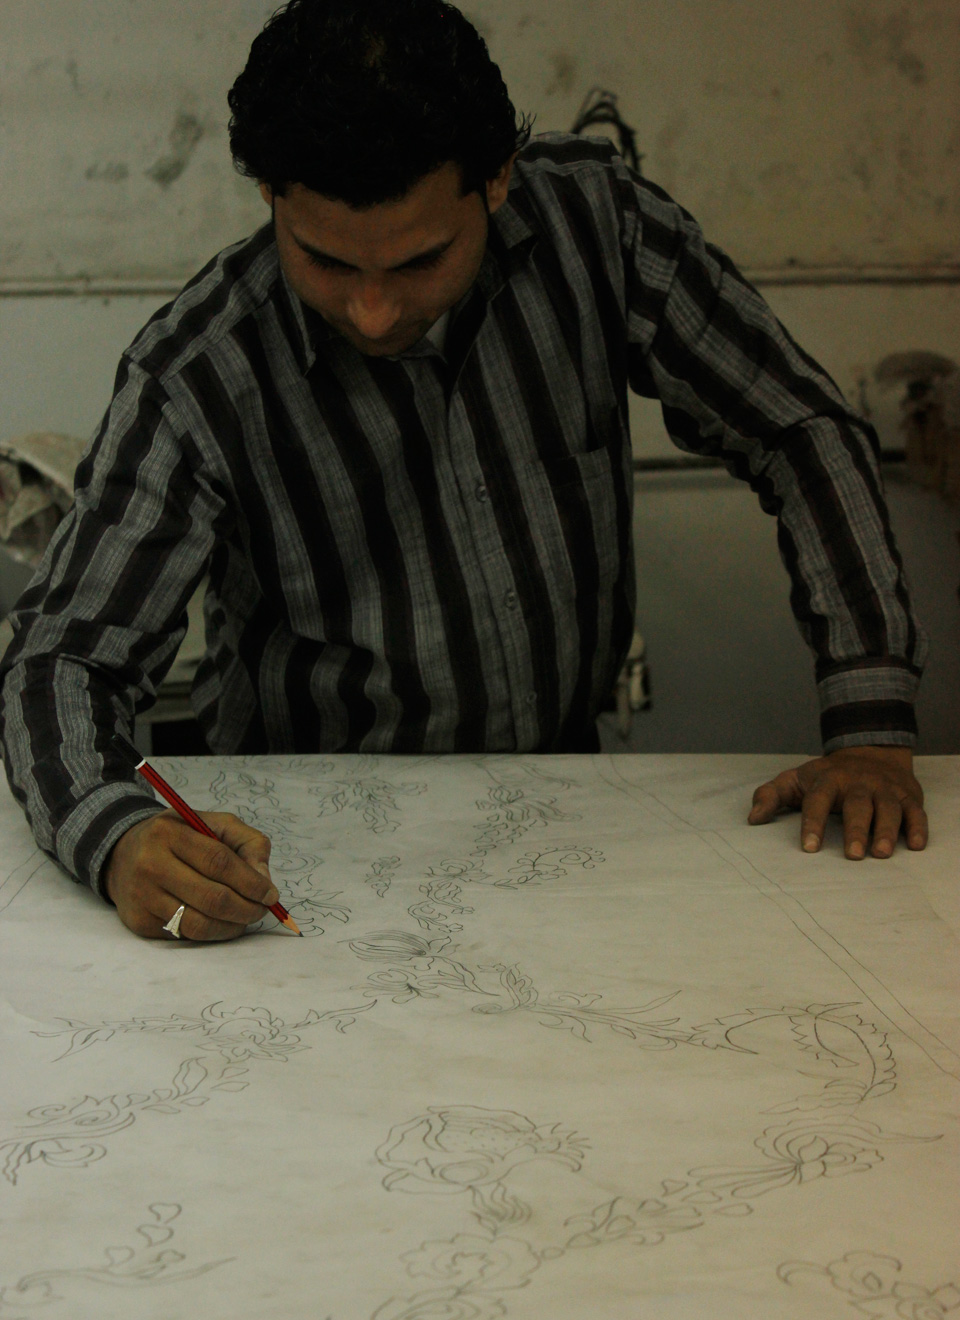 Our head designer traces the images to prepare them for hand embroidery.